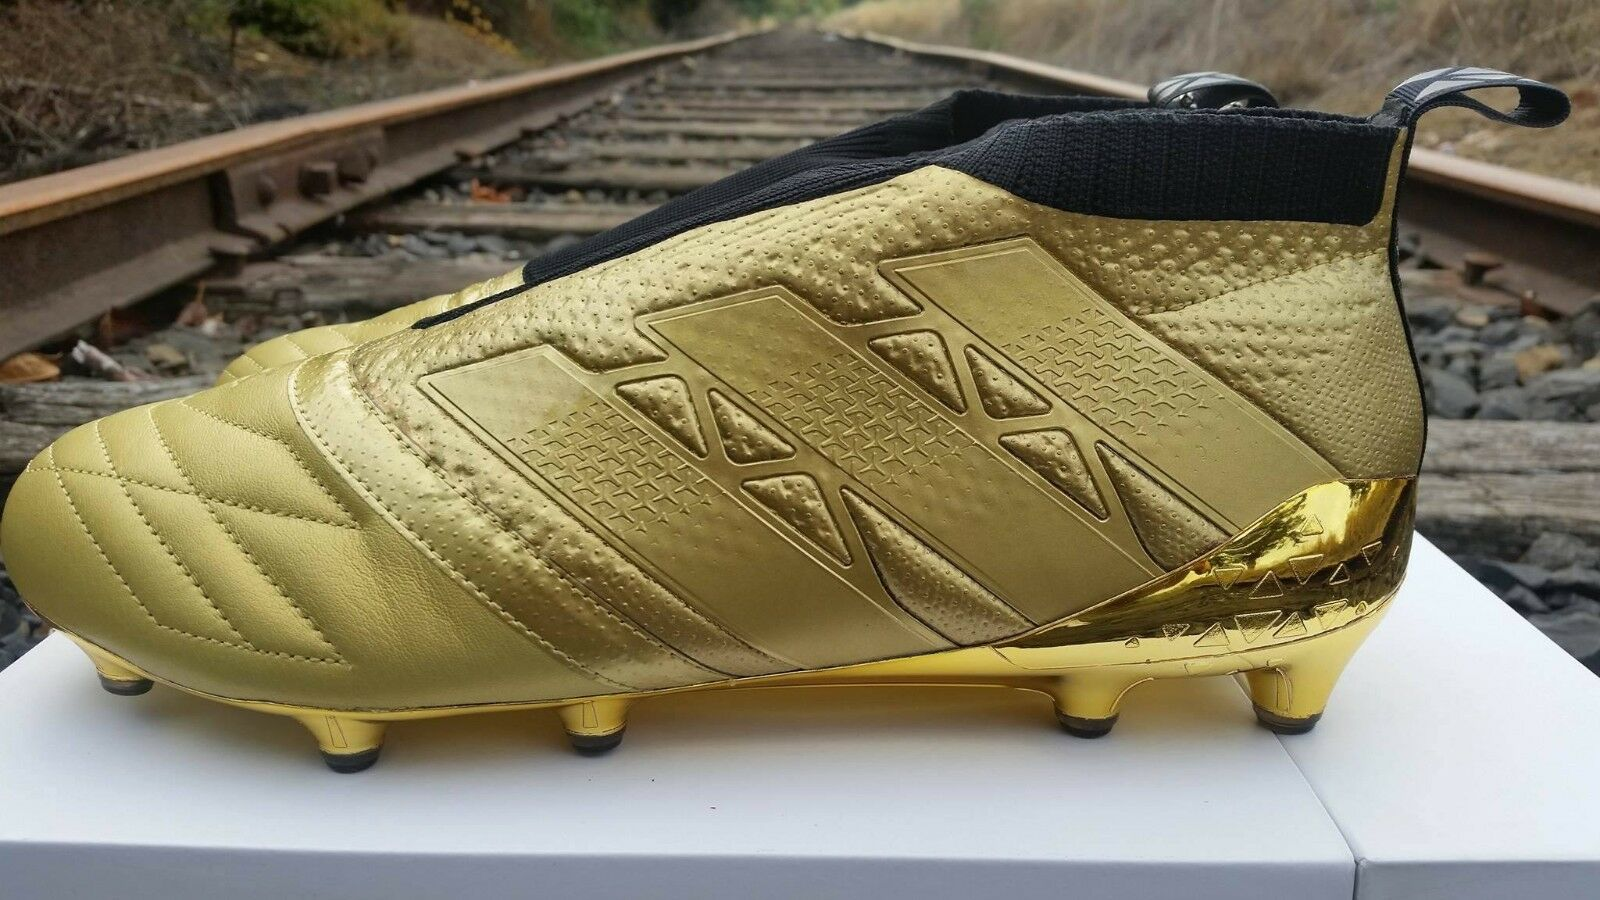 Adidas ACE Gold Spacecraft 16+ PURECONTROL FG CLEATS Size 9.5 10 10.5 11